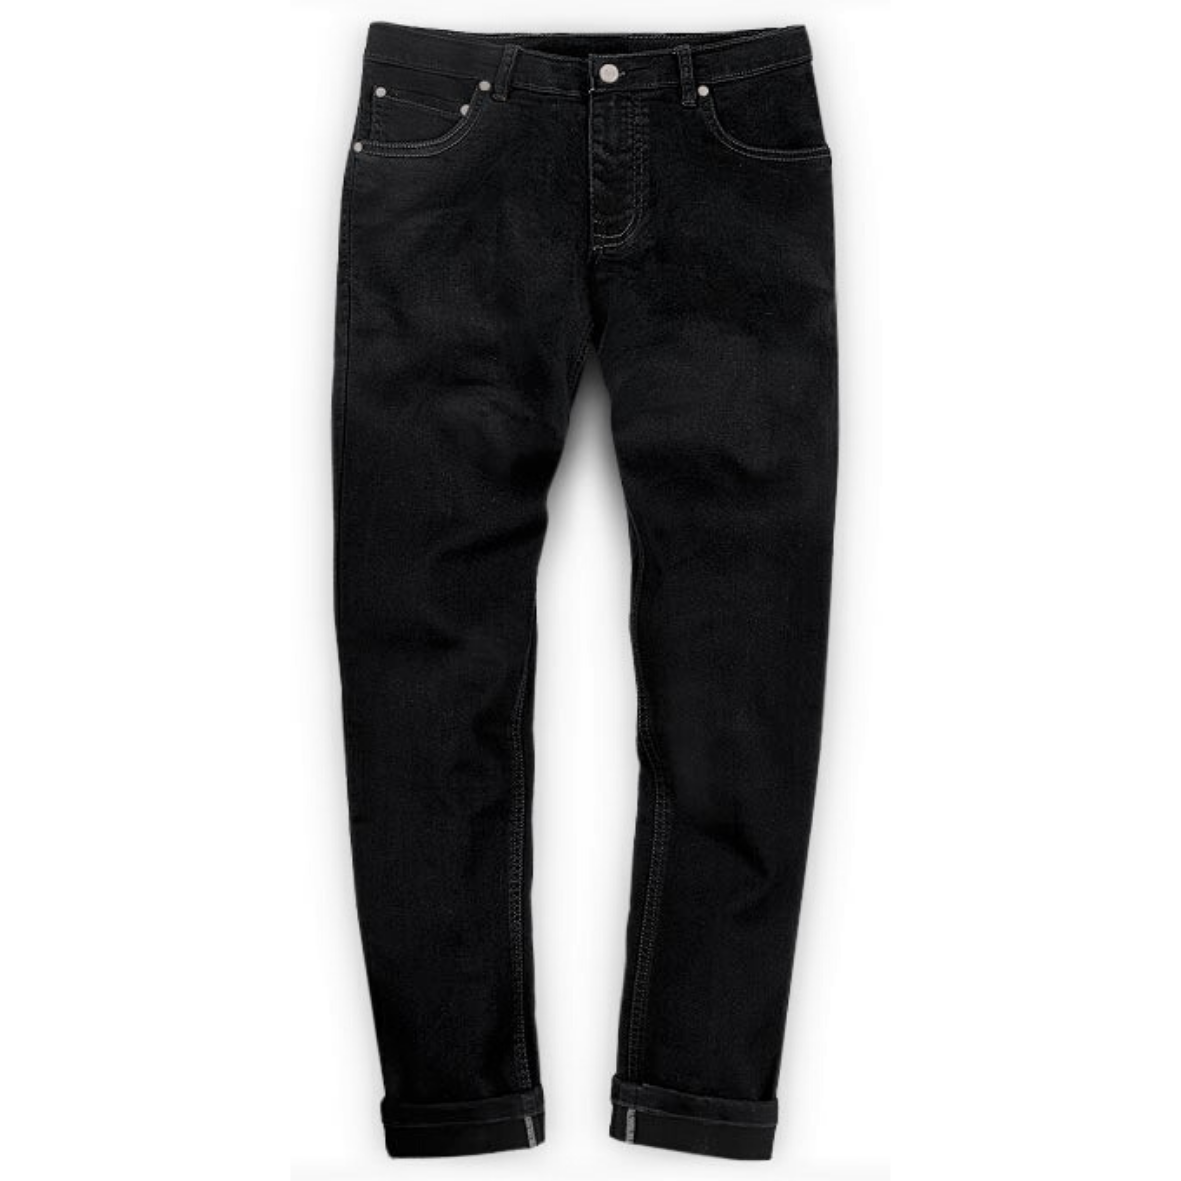 Levis 502™ Dark Denim Jeans